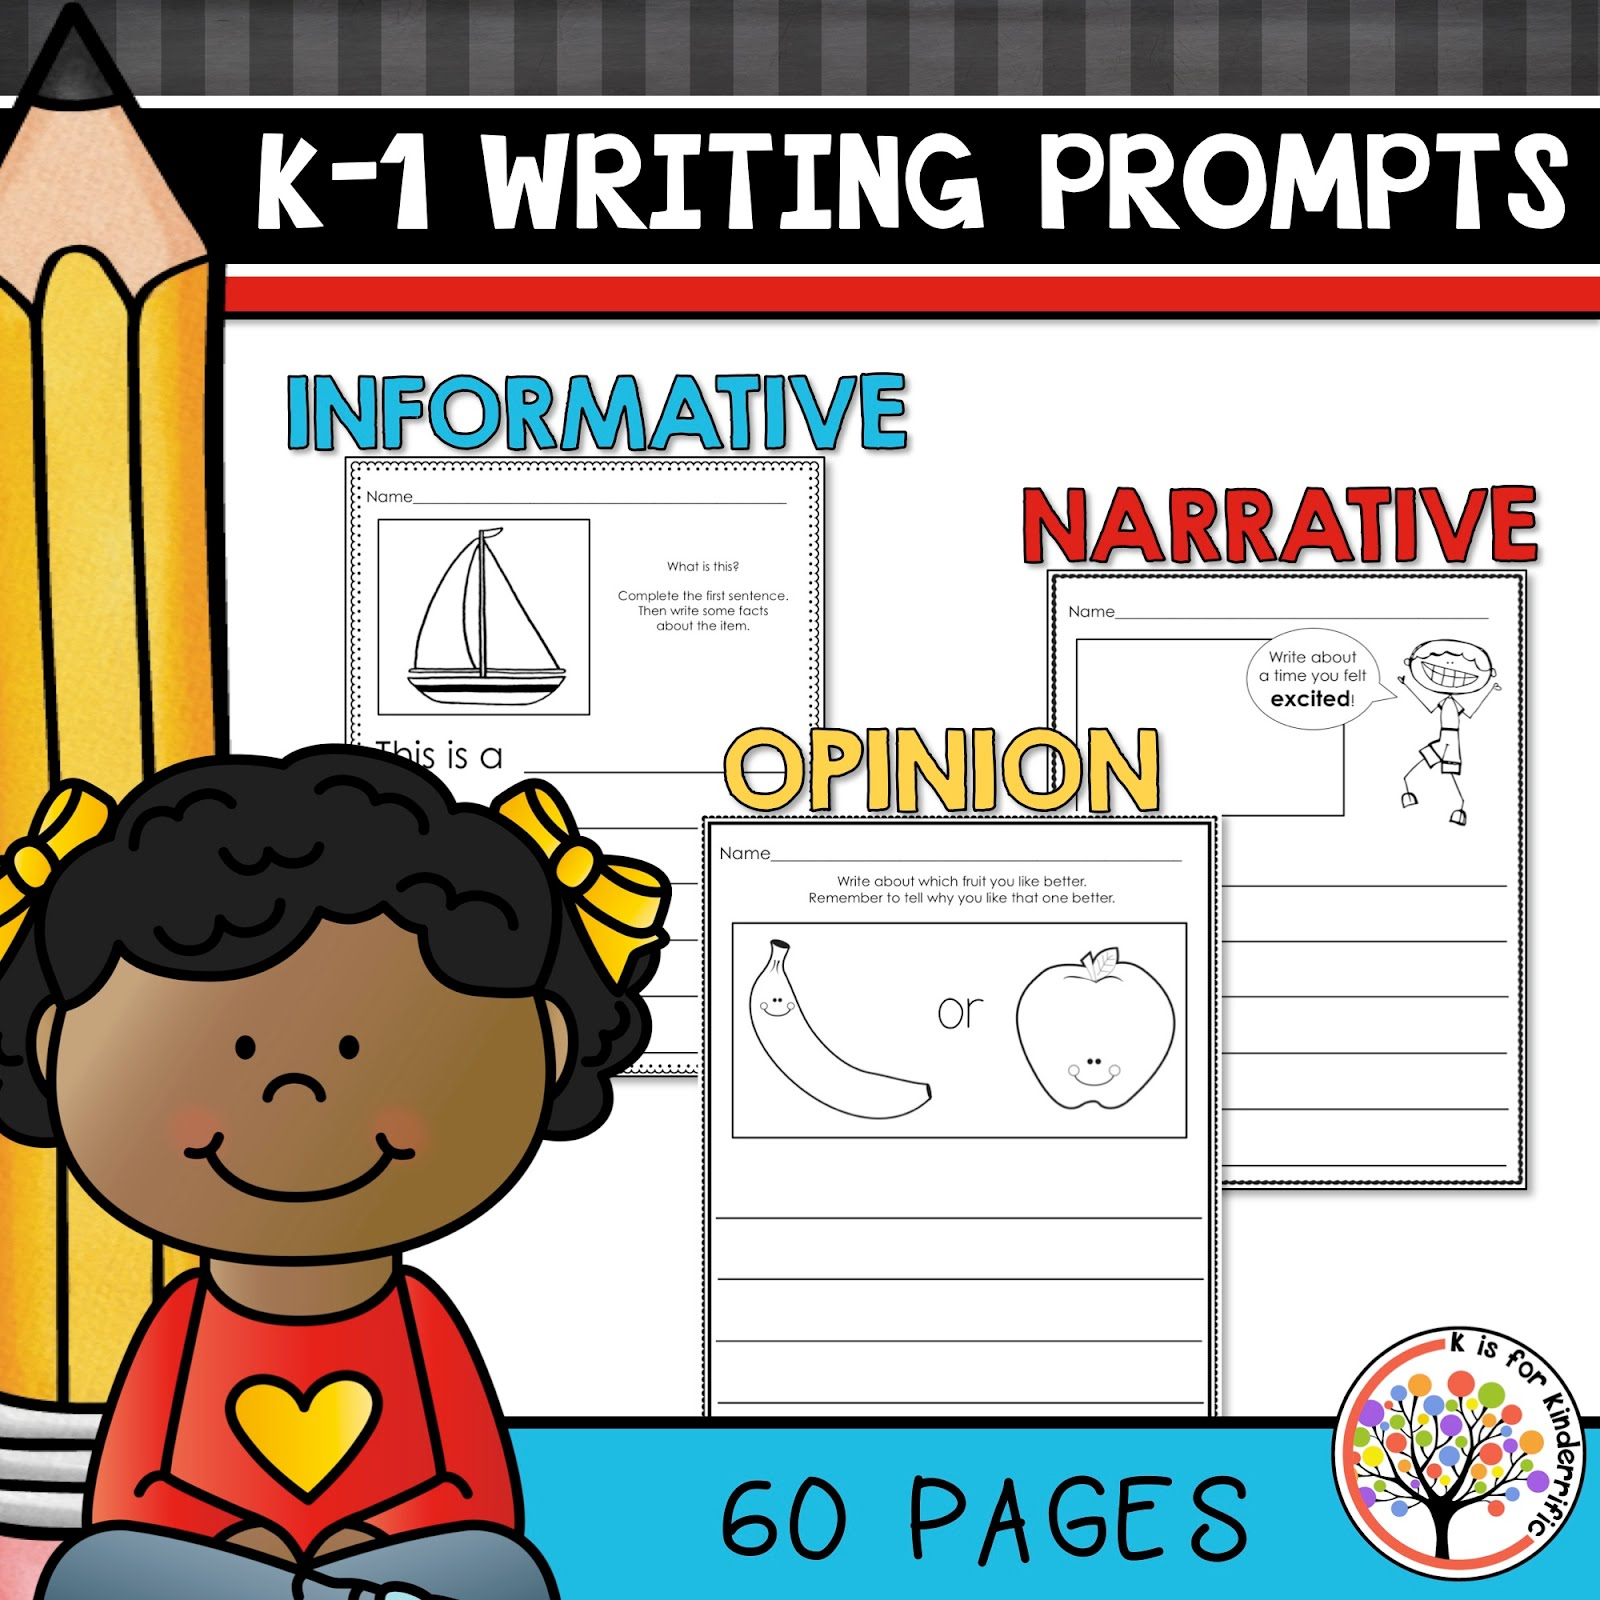 K-1 Writing Prompts